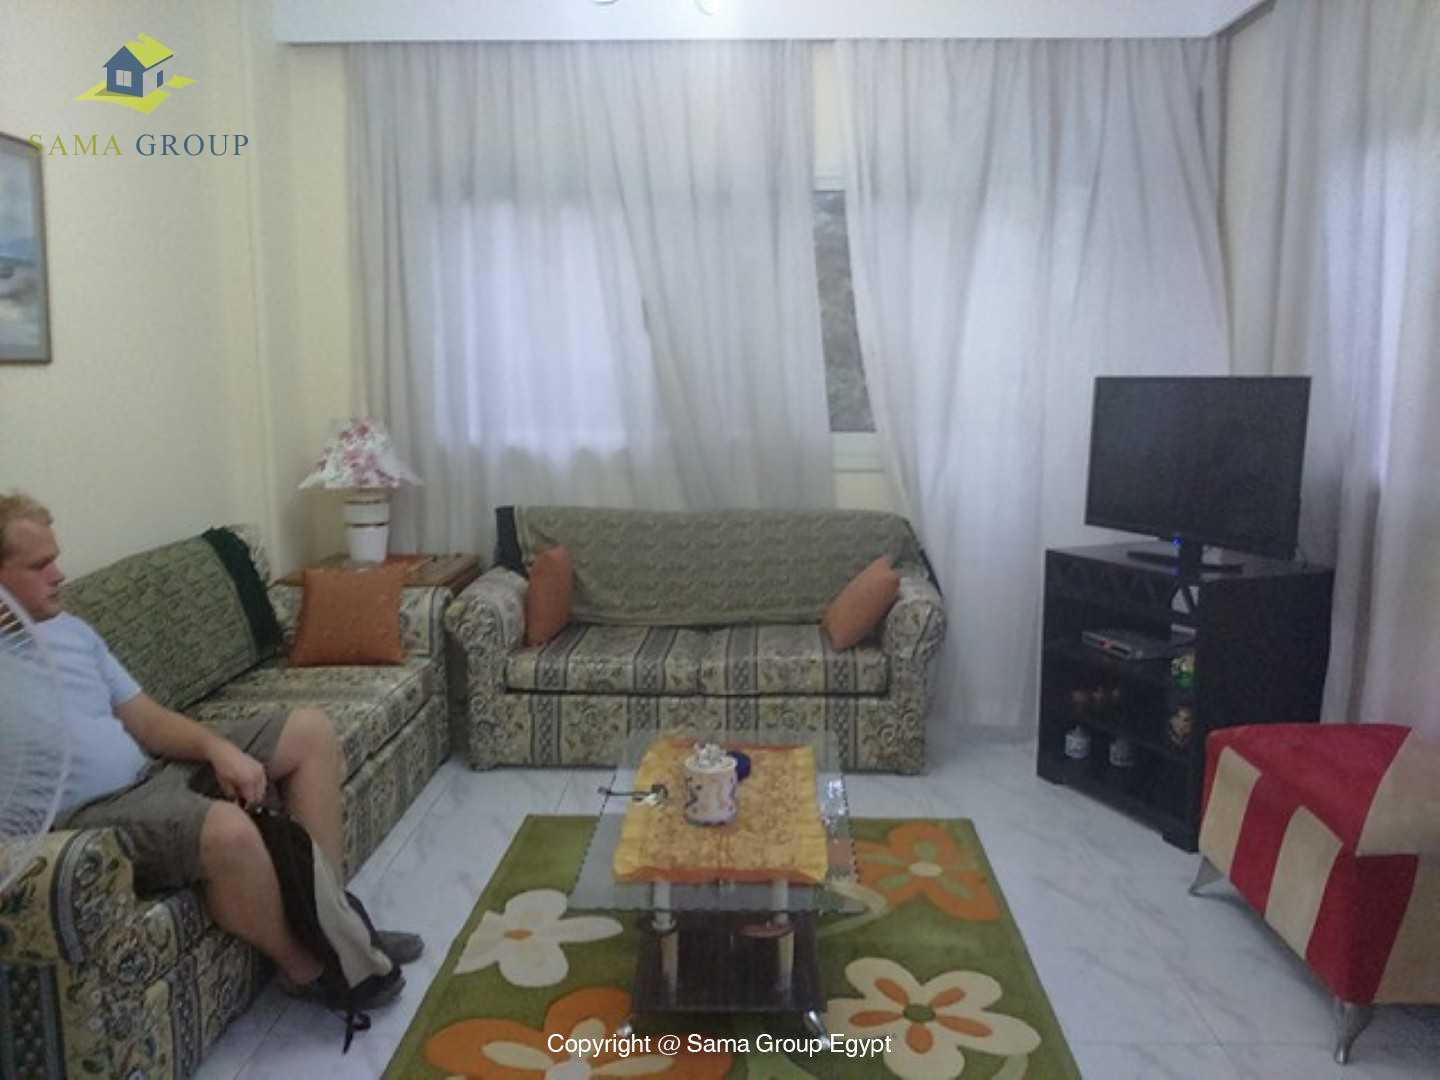 Furnished Apartment With Open View For Rent In Maadi,Furnished,Apartment NO #12